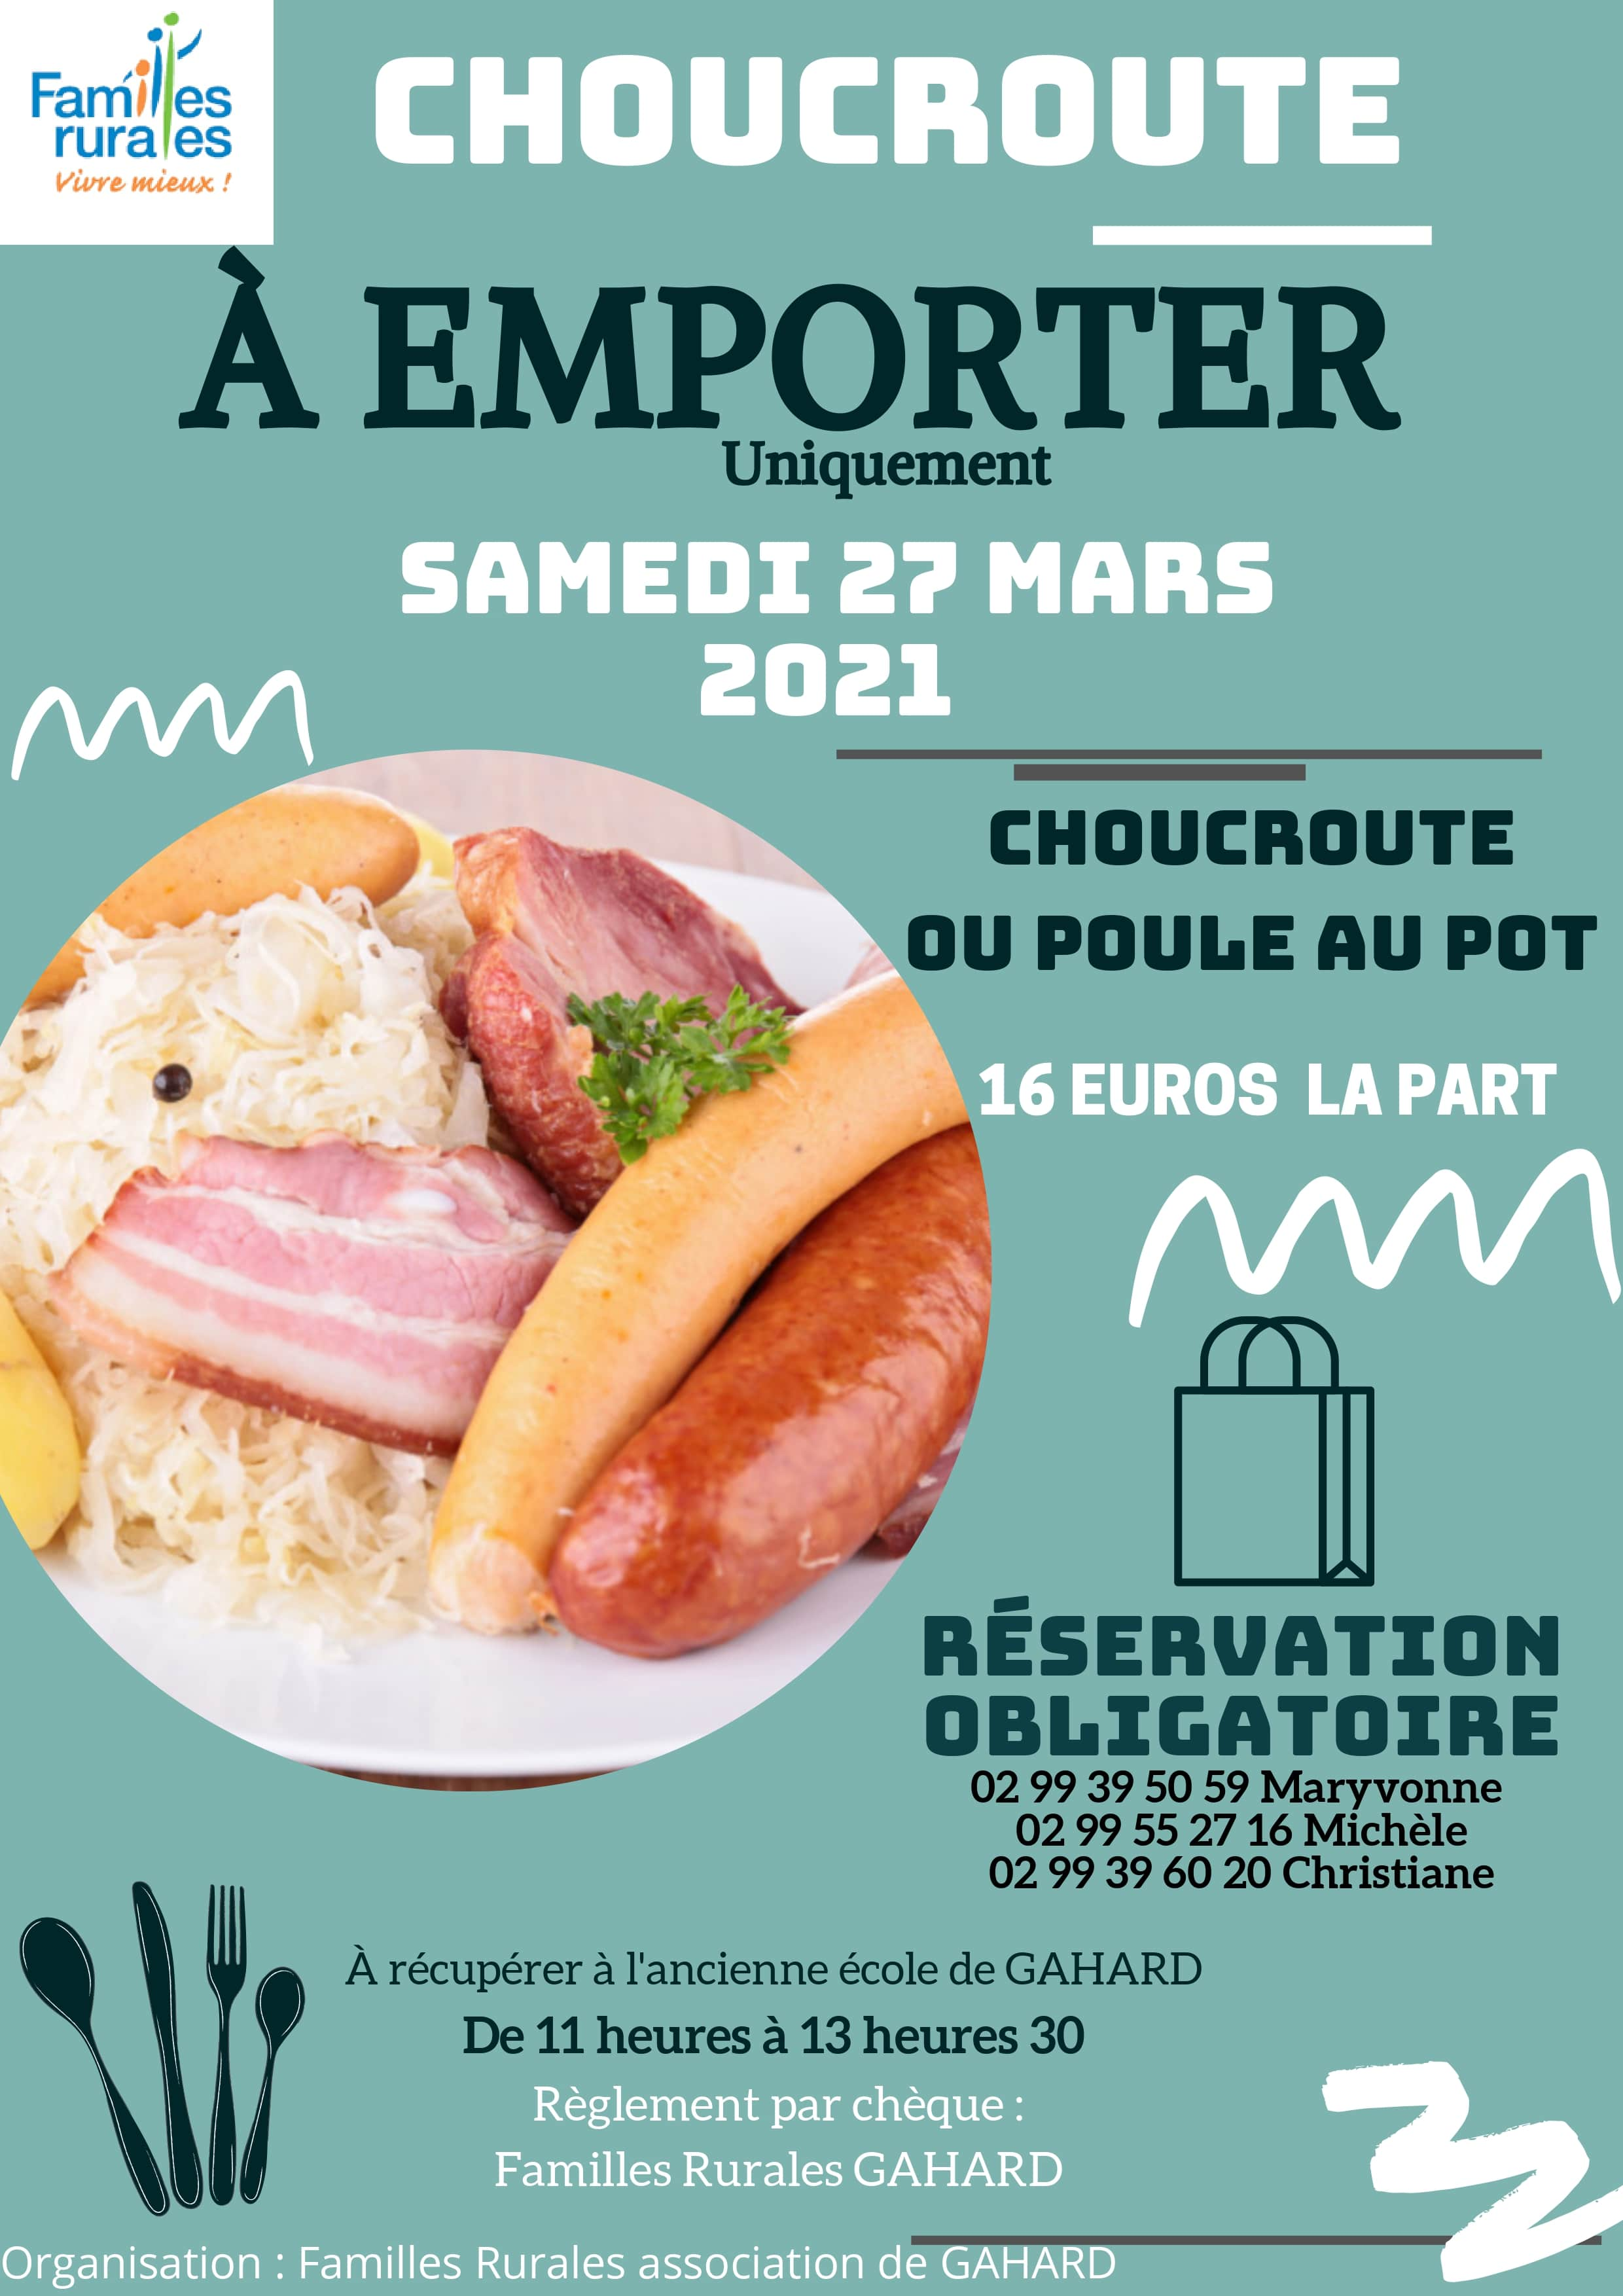 choucroute_1_page-0001-min.jpg